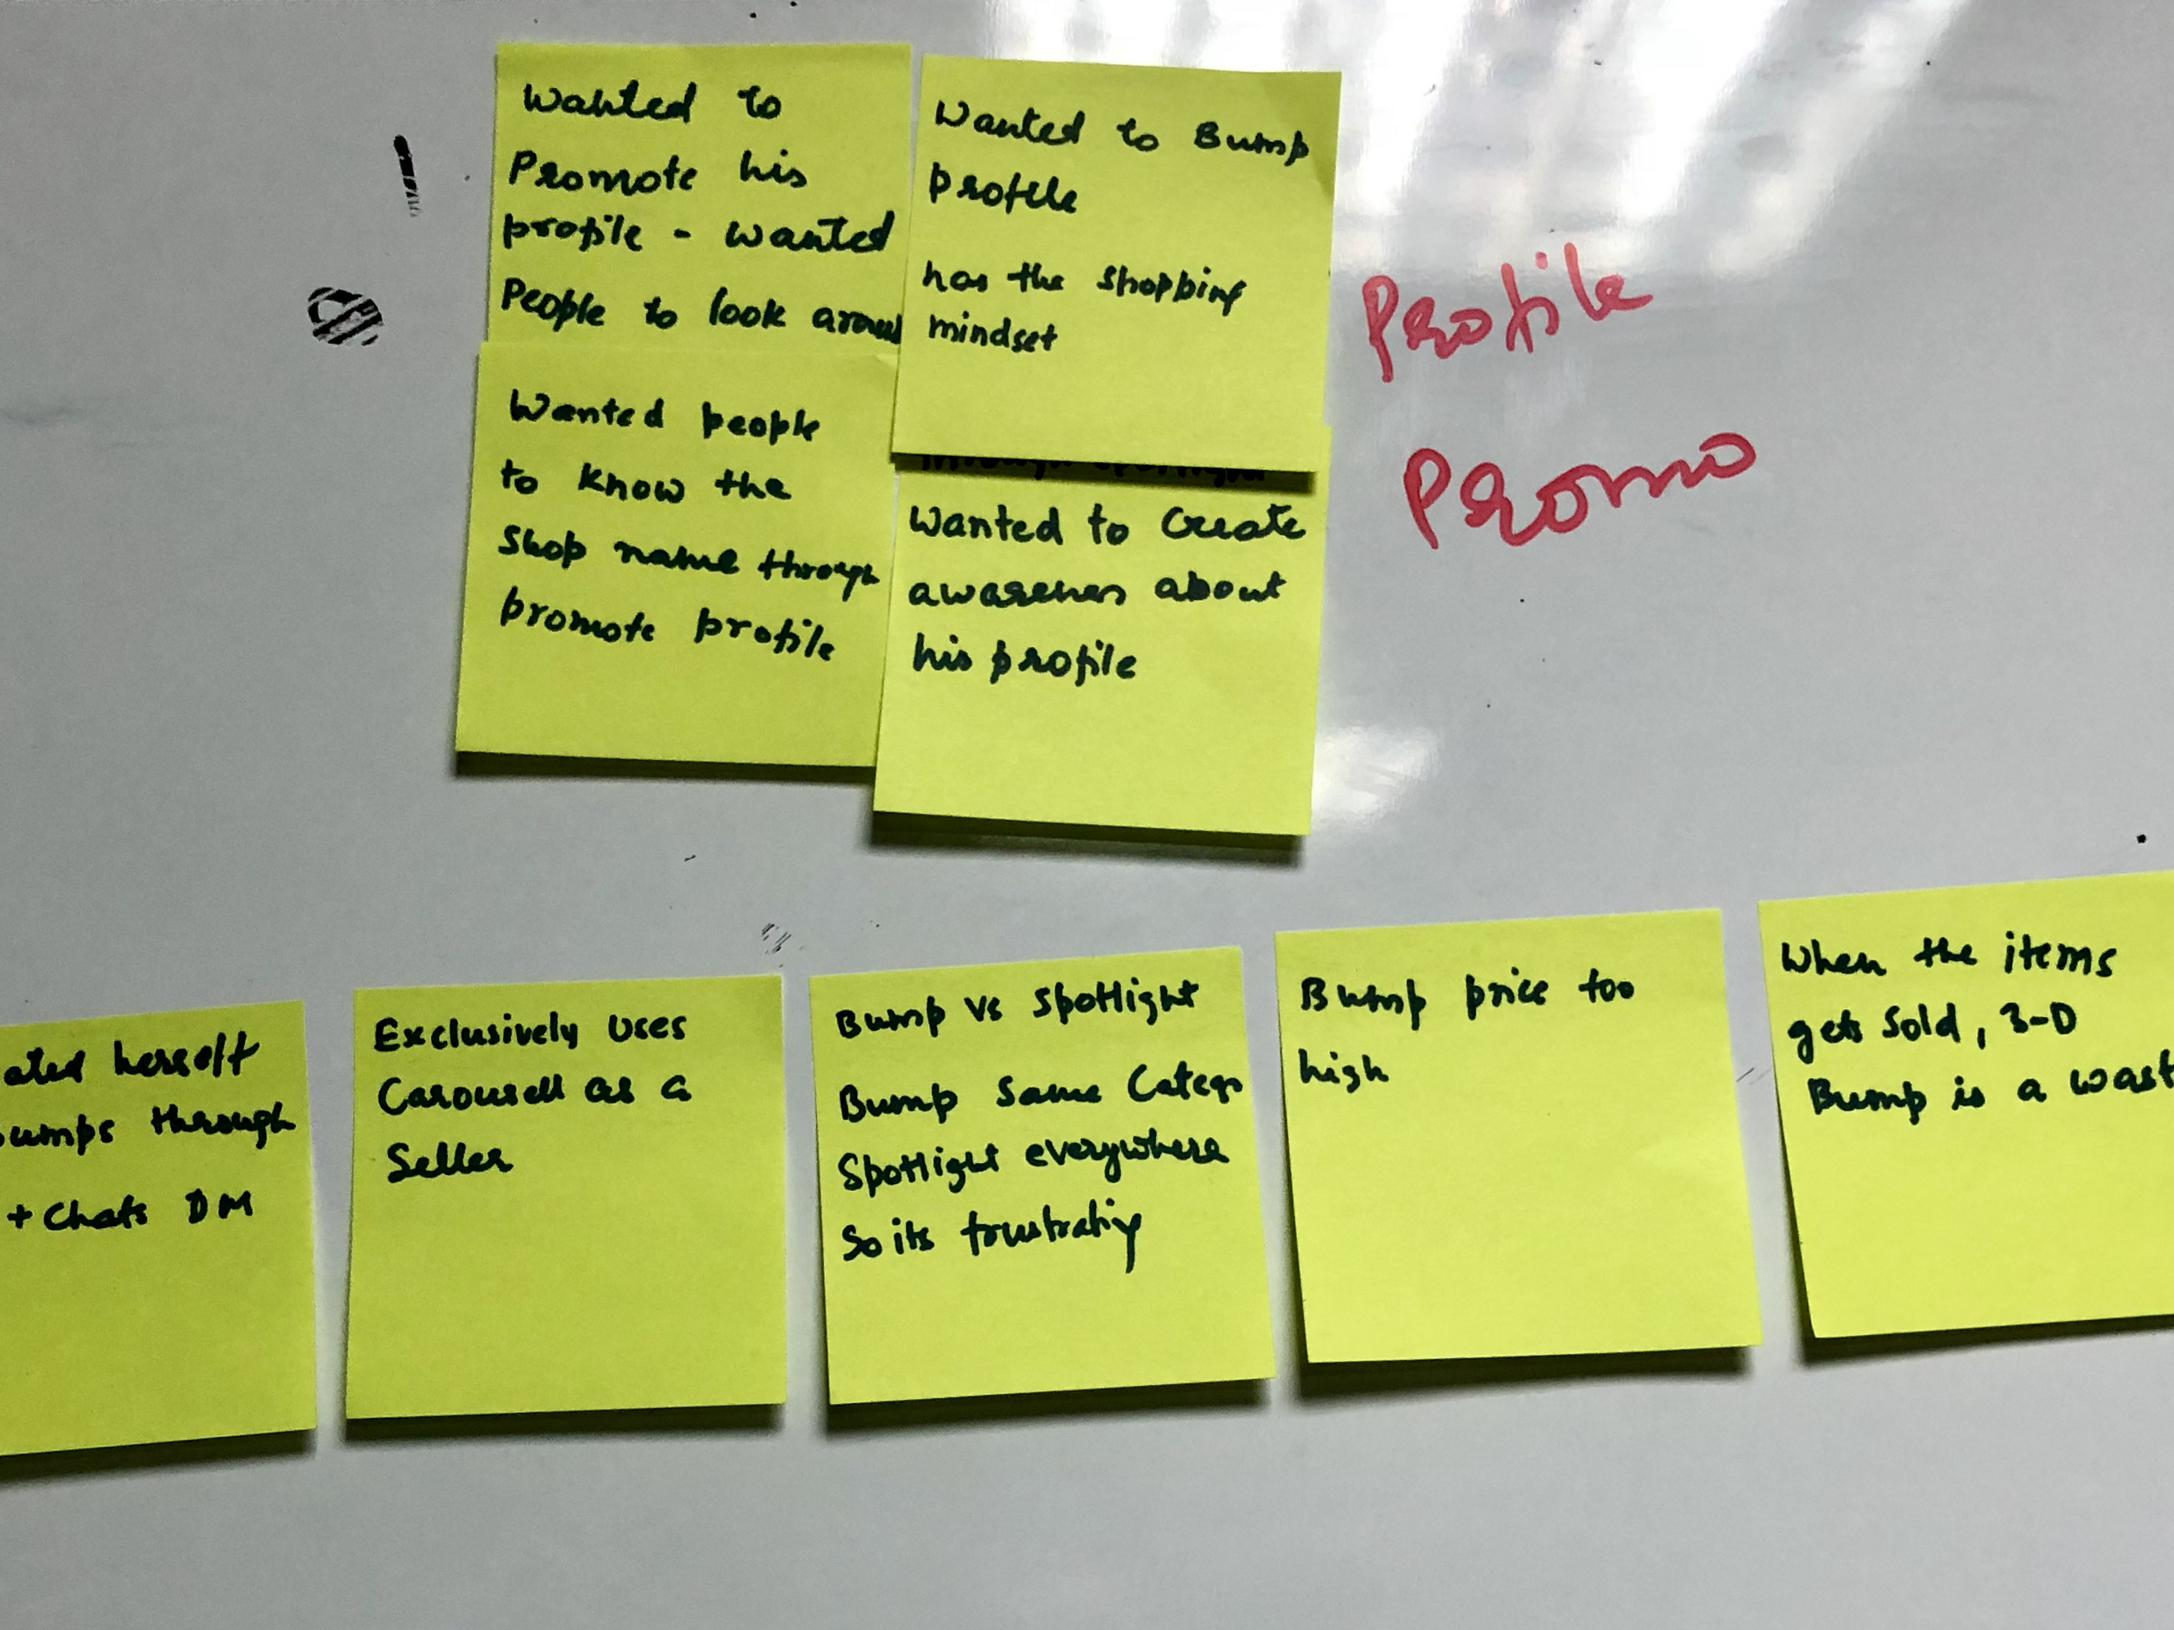 Sticky notes from one of the research